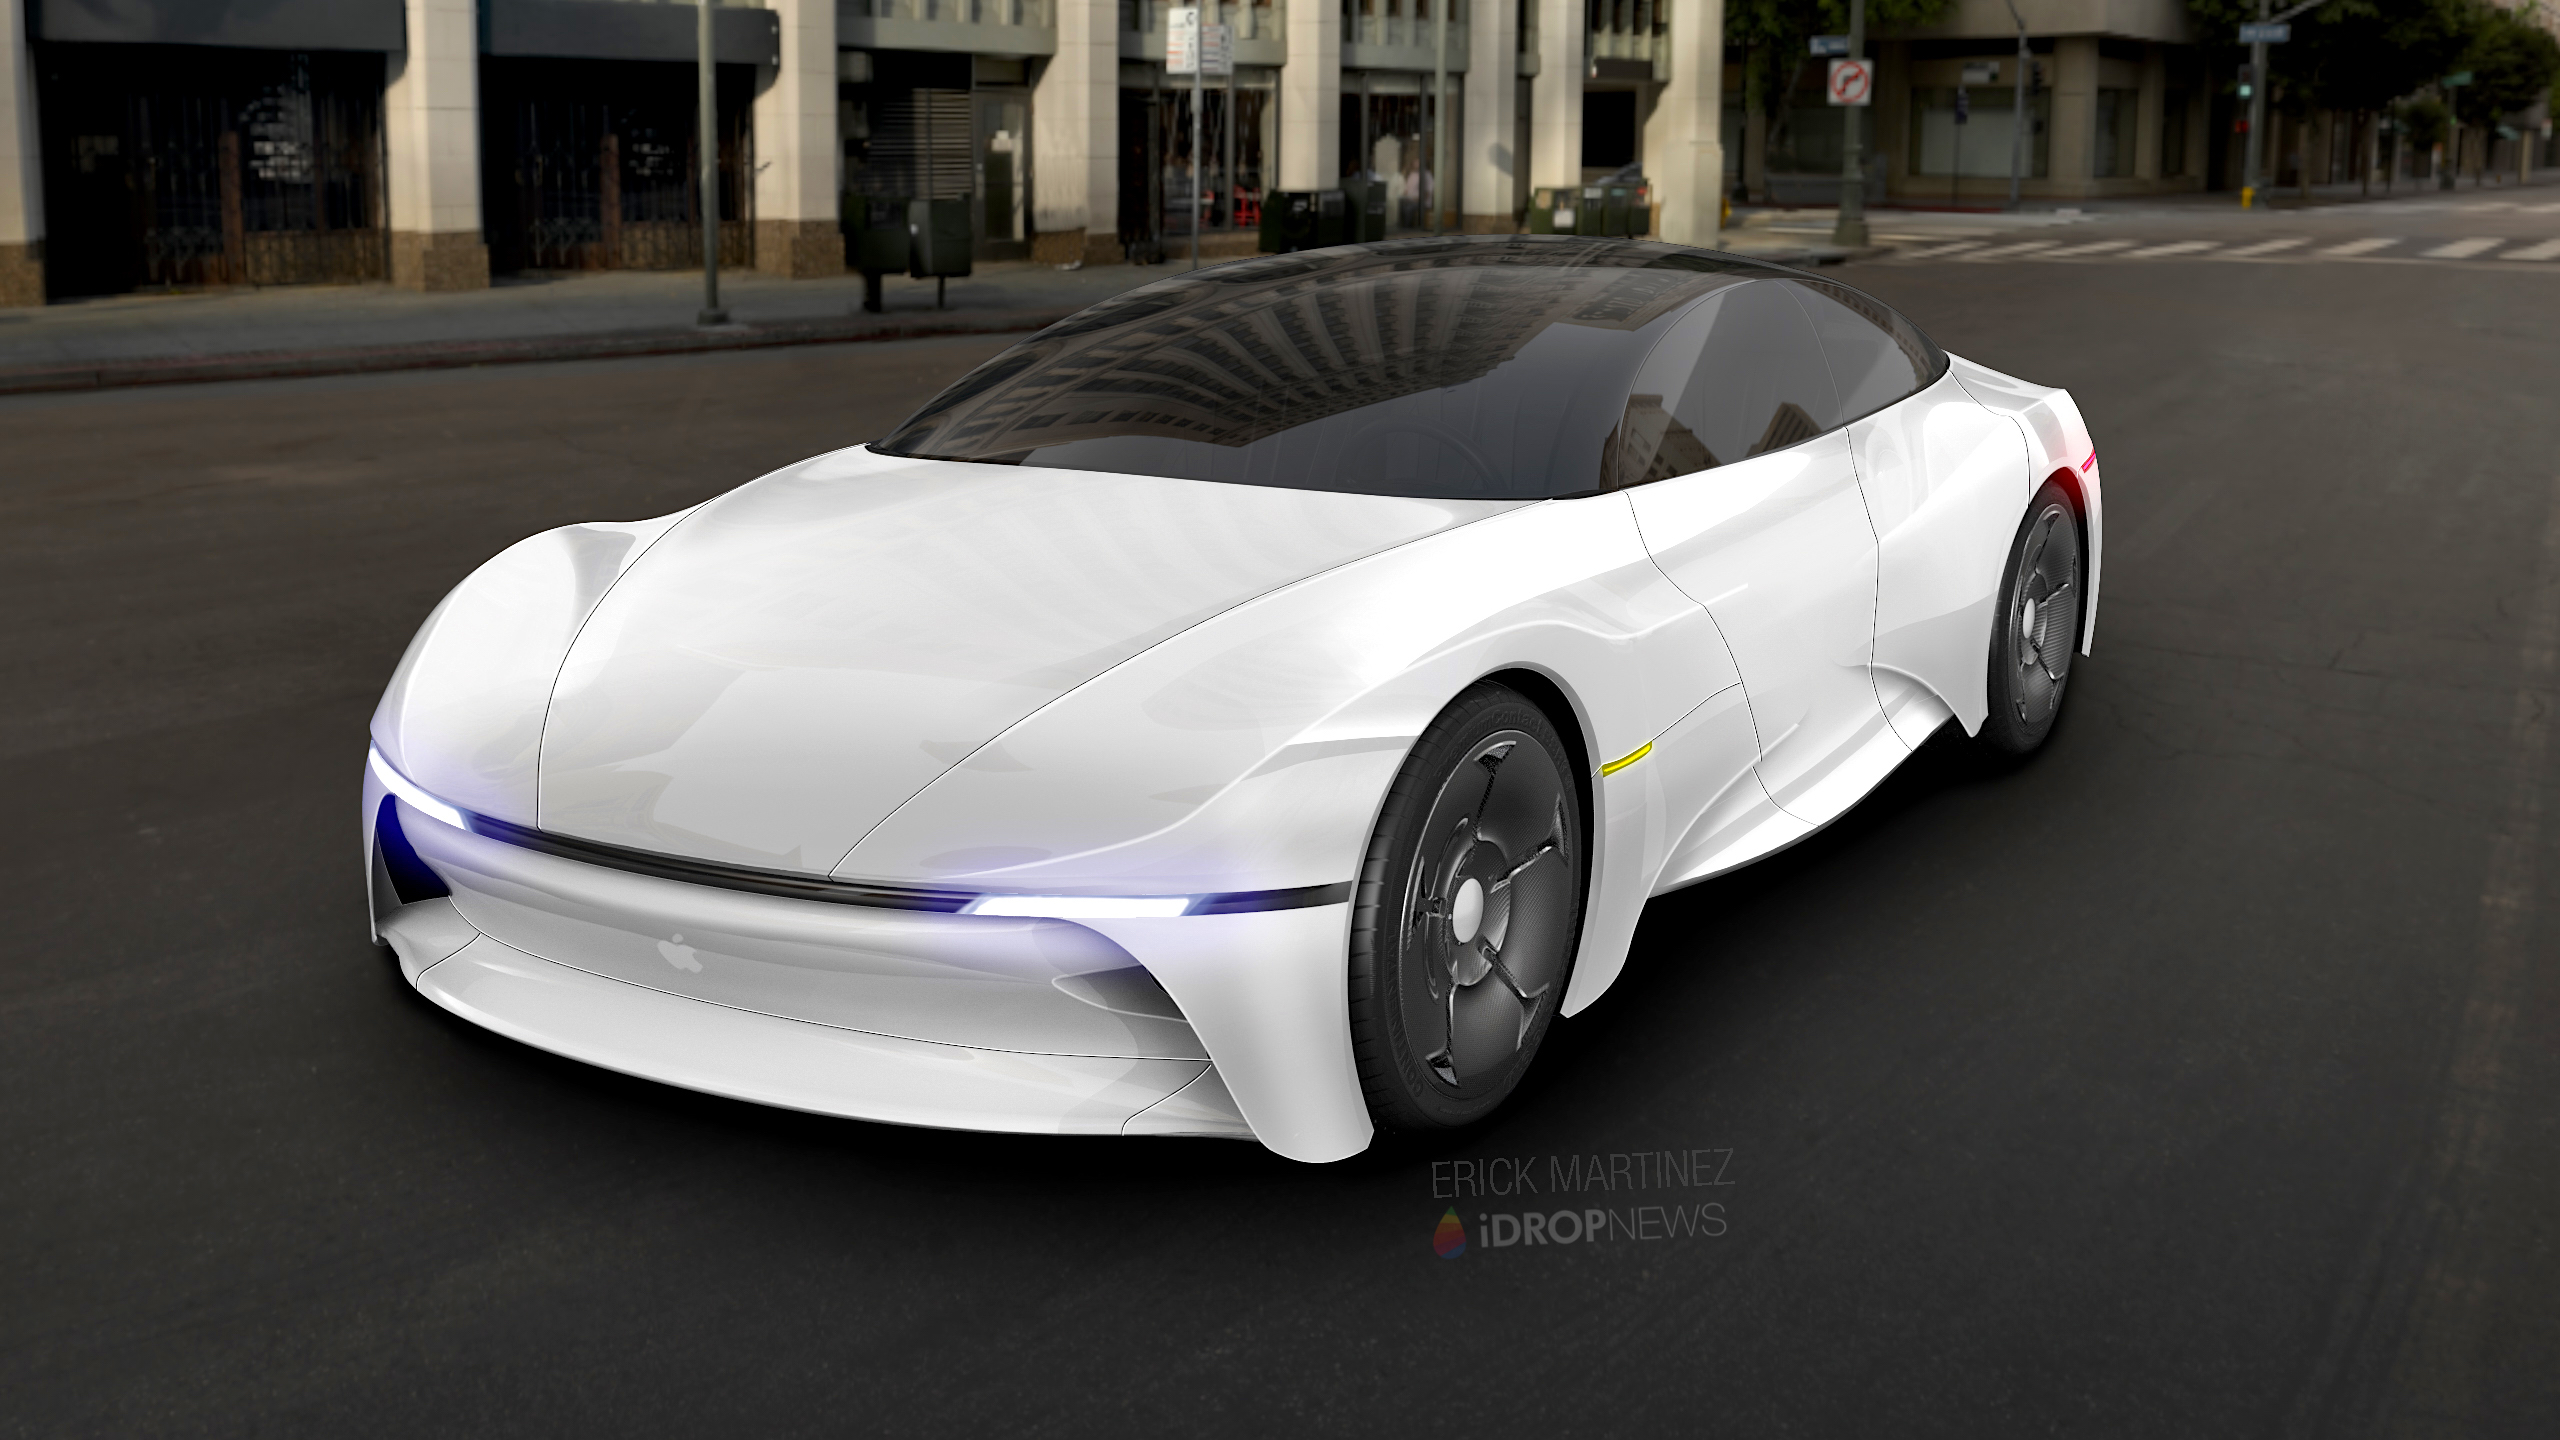 Apple Car Concept Renders iDrop News 2